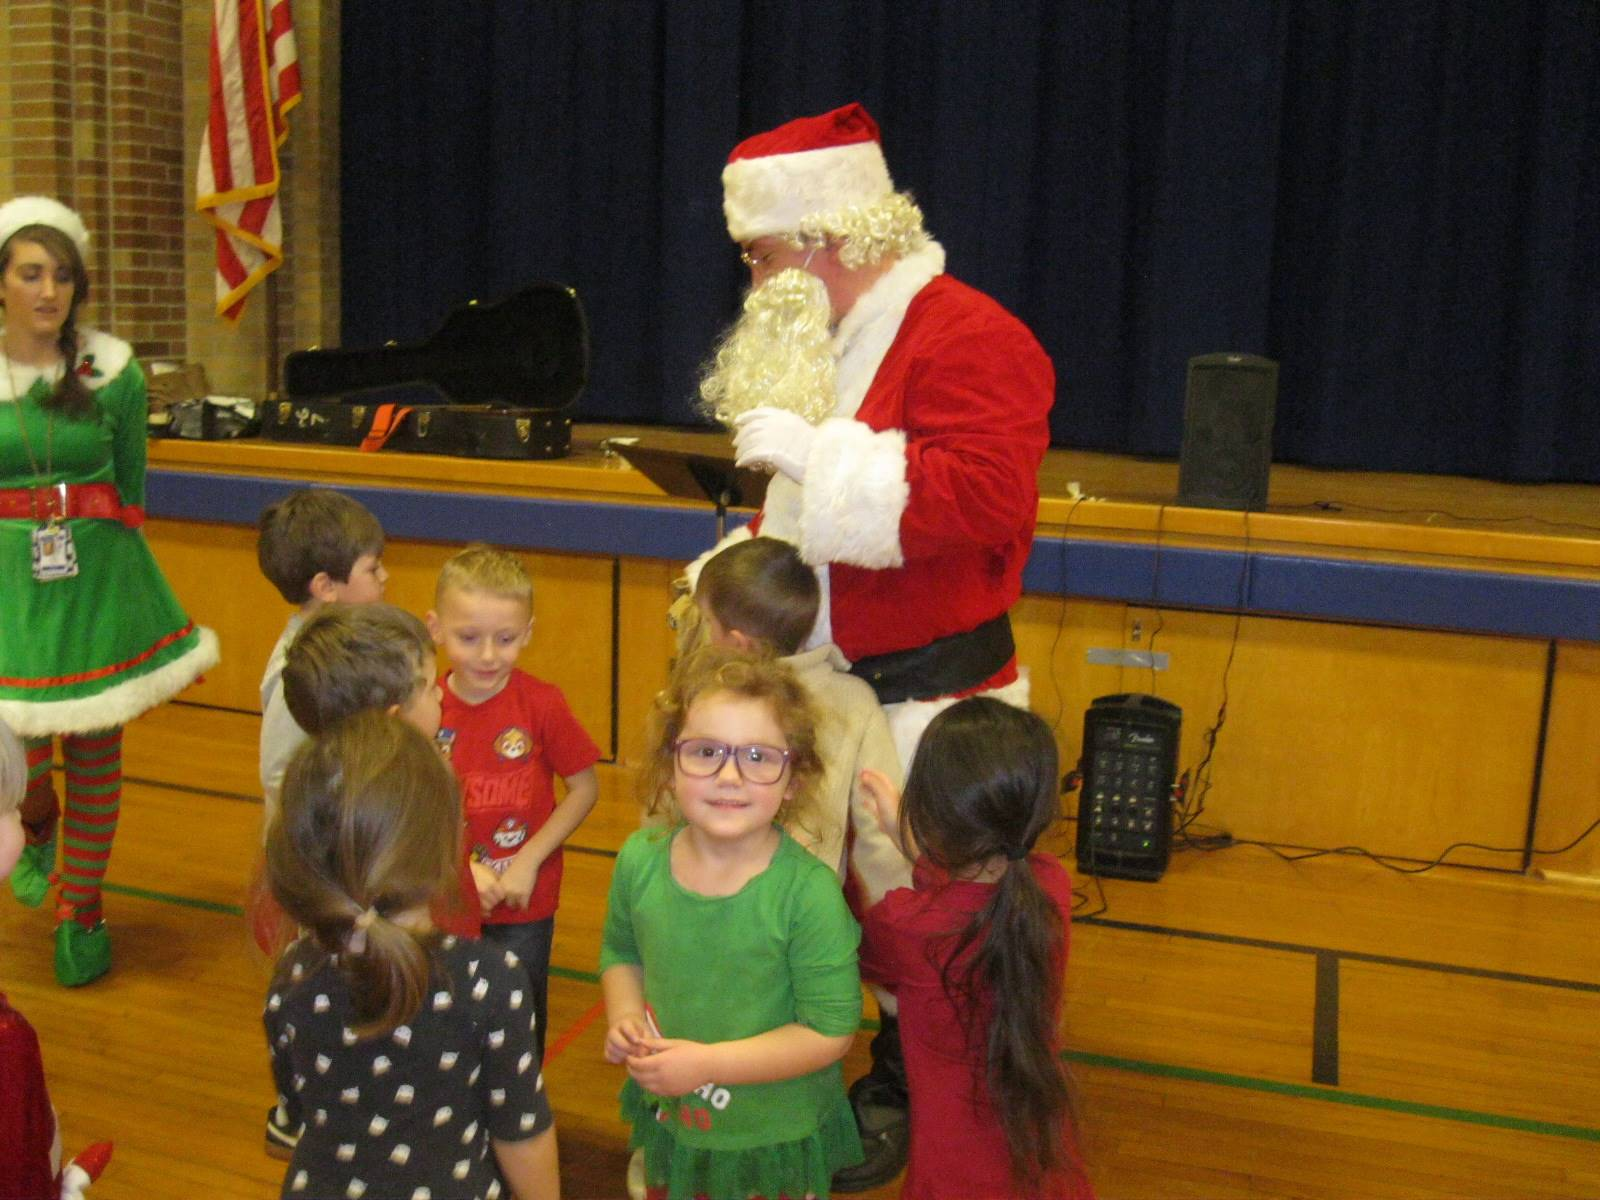 Santa listens to a kid ask questions.